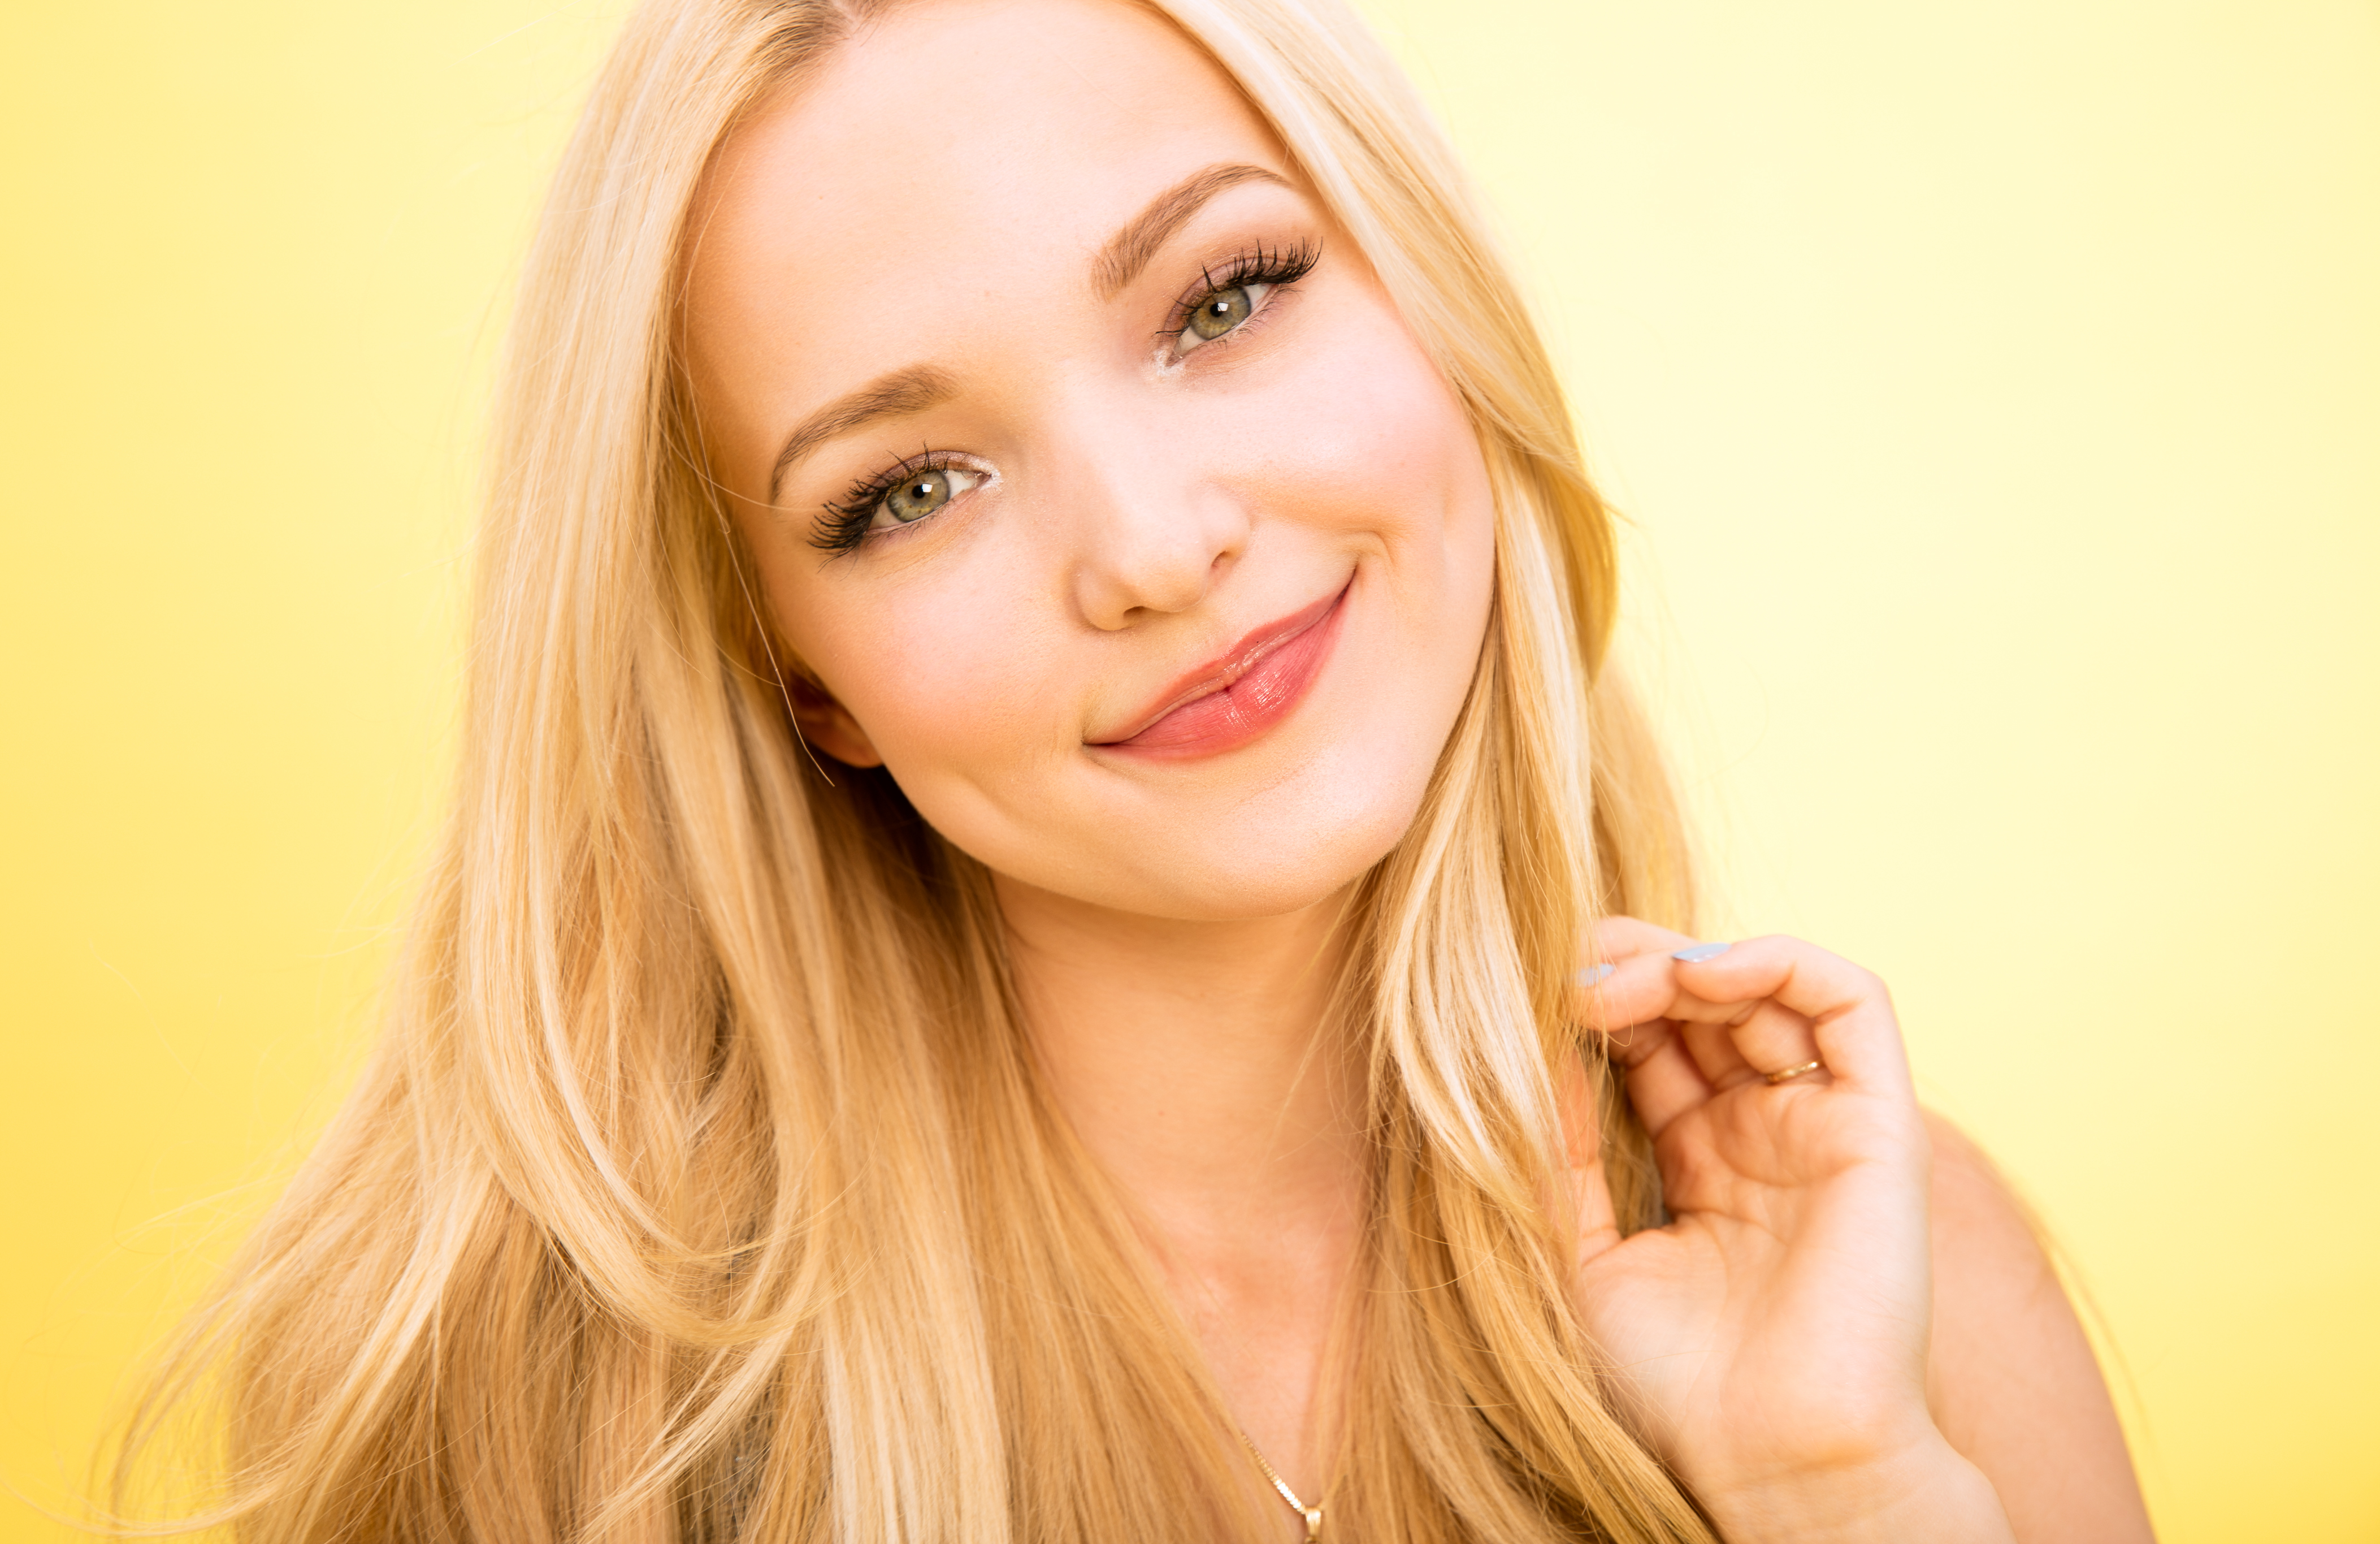 Nice wallpapers Dove Cameron 4211x2731px